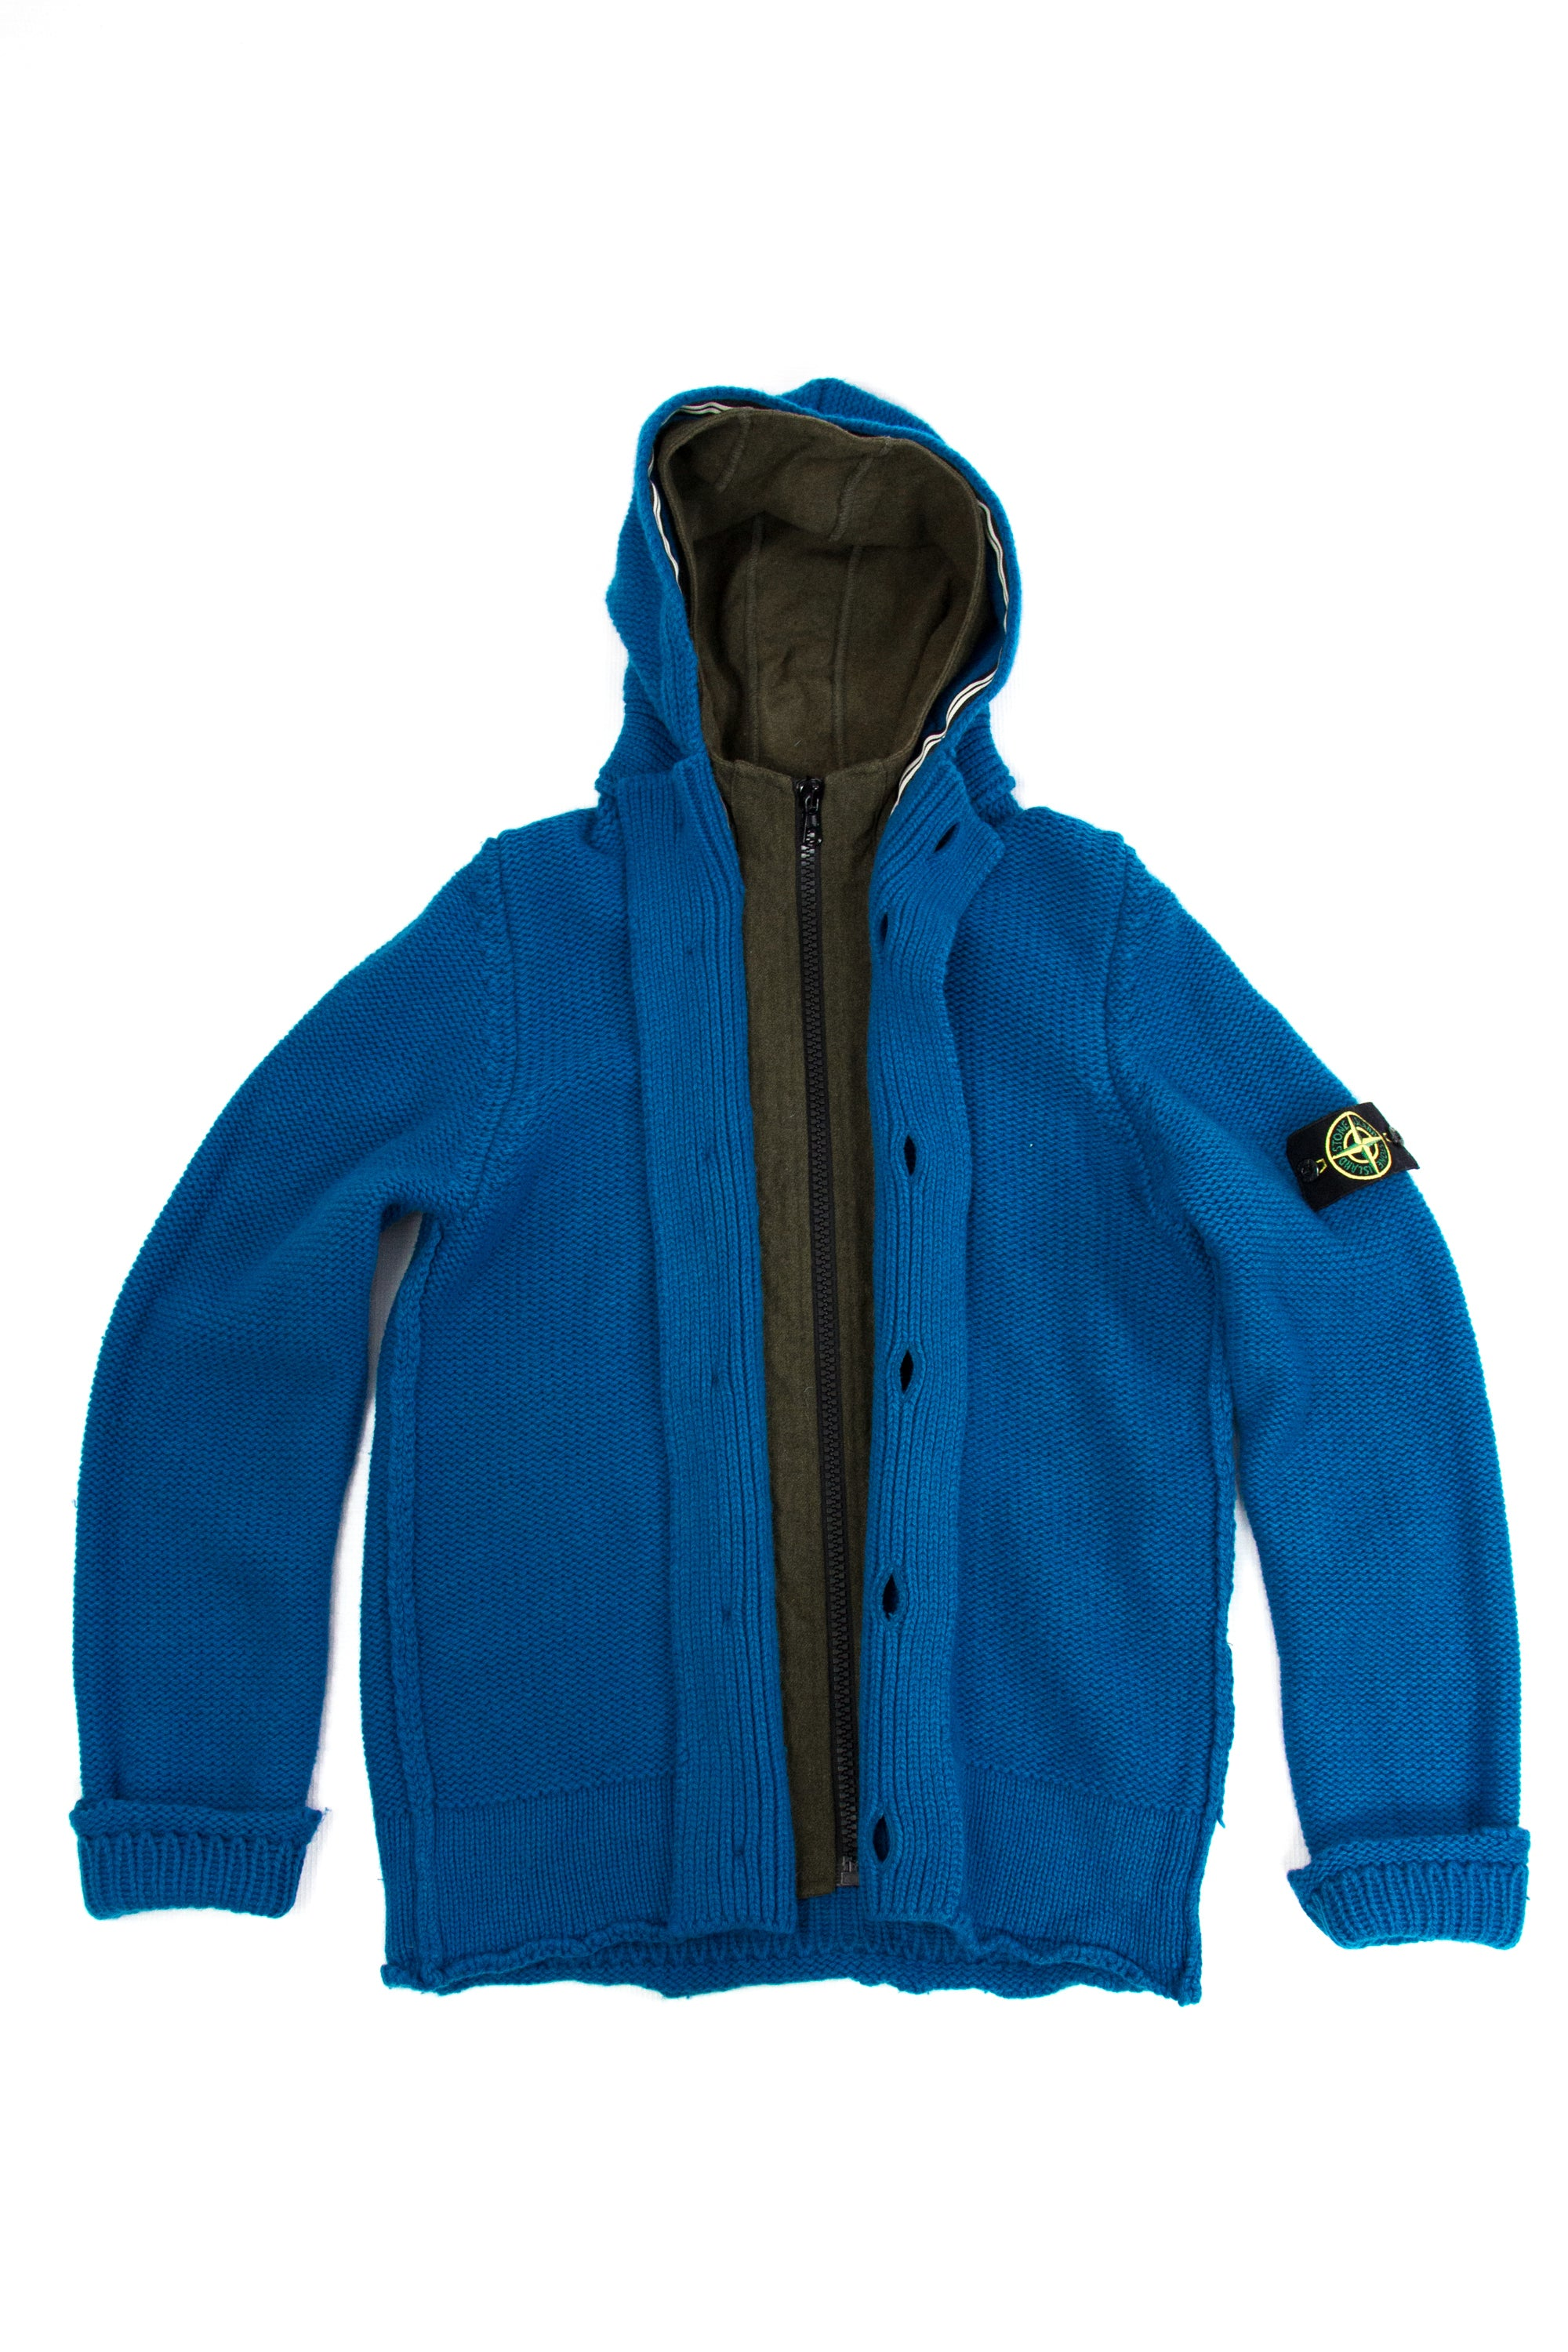 STONE ISLAND Chunky Wool Hooded Cardigan, M - secondfirst